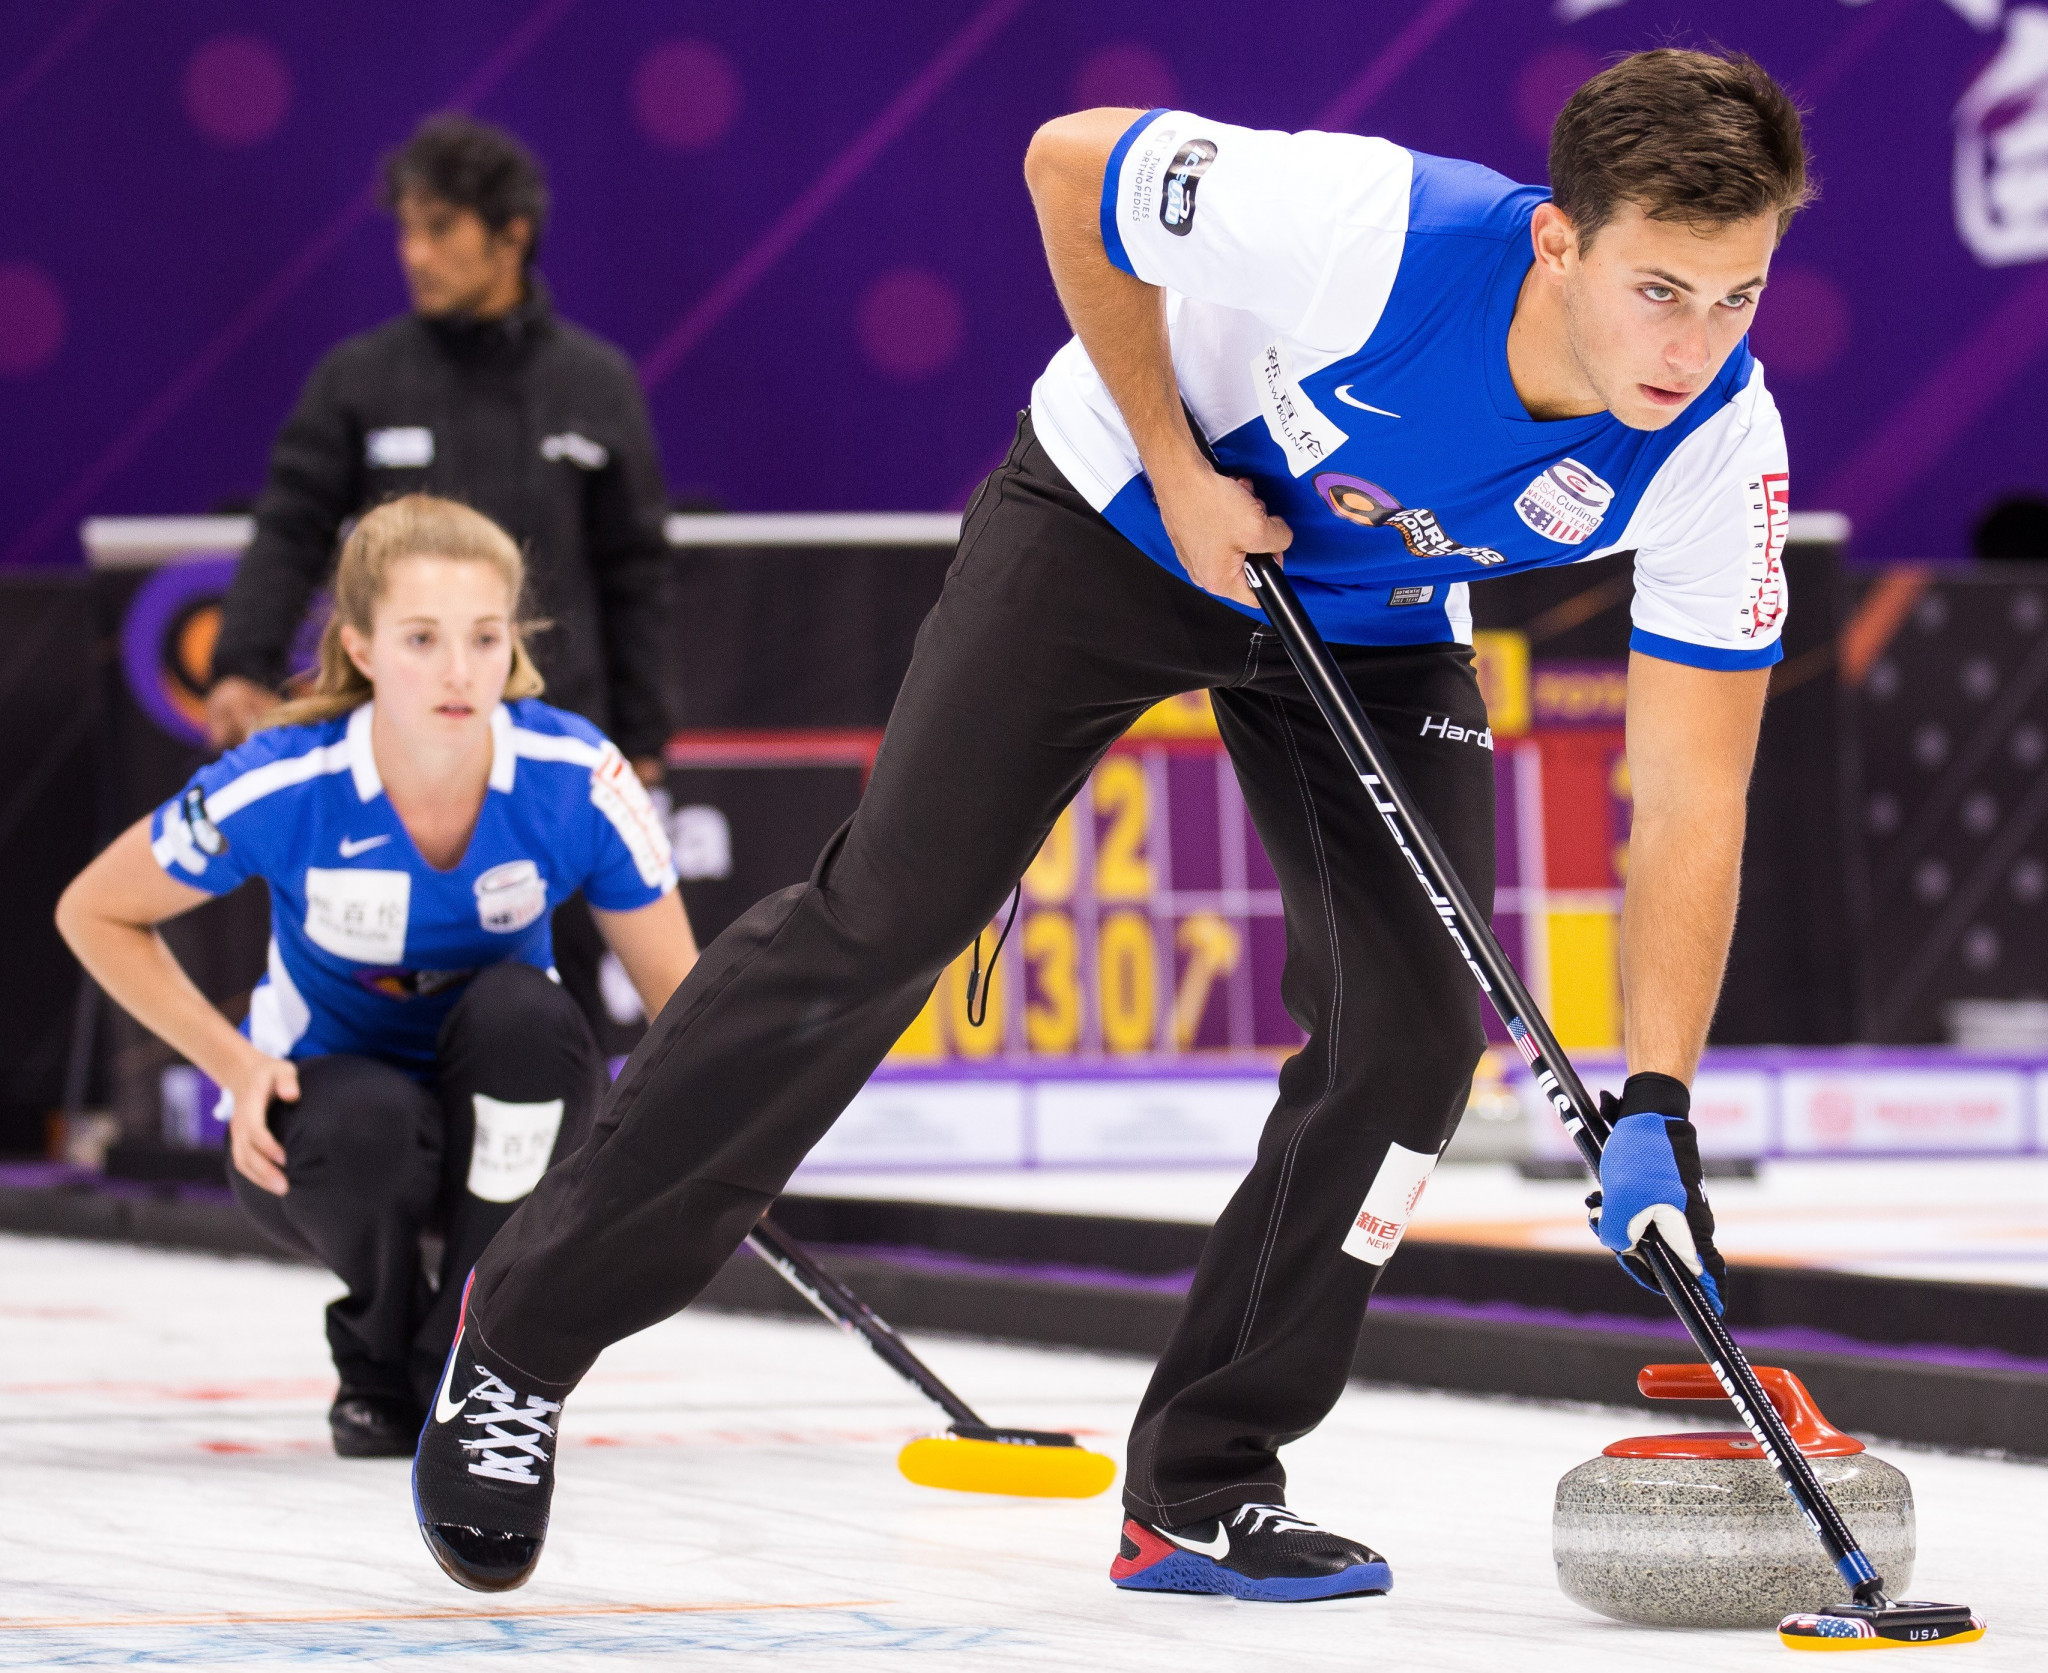 Sarah Anderson and Korey Dropkin of the US are undefeated in the mixed doubles ©WCF